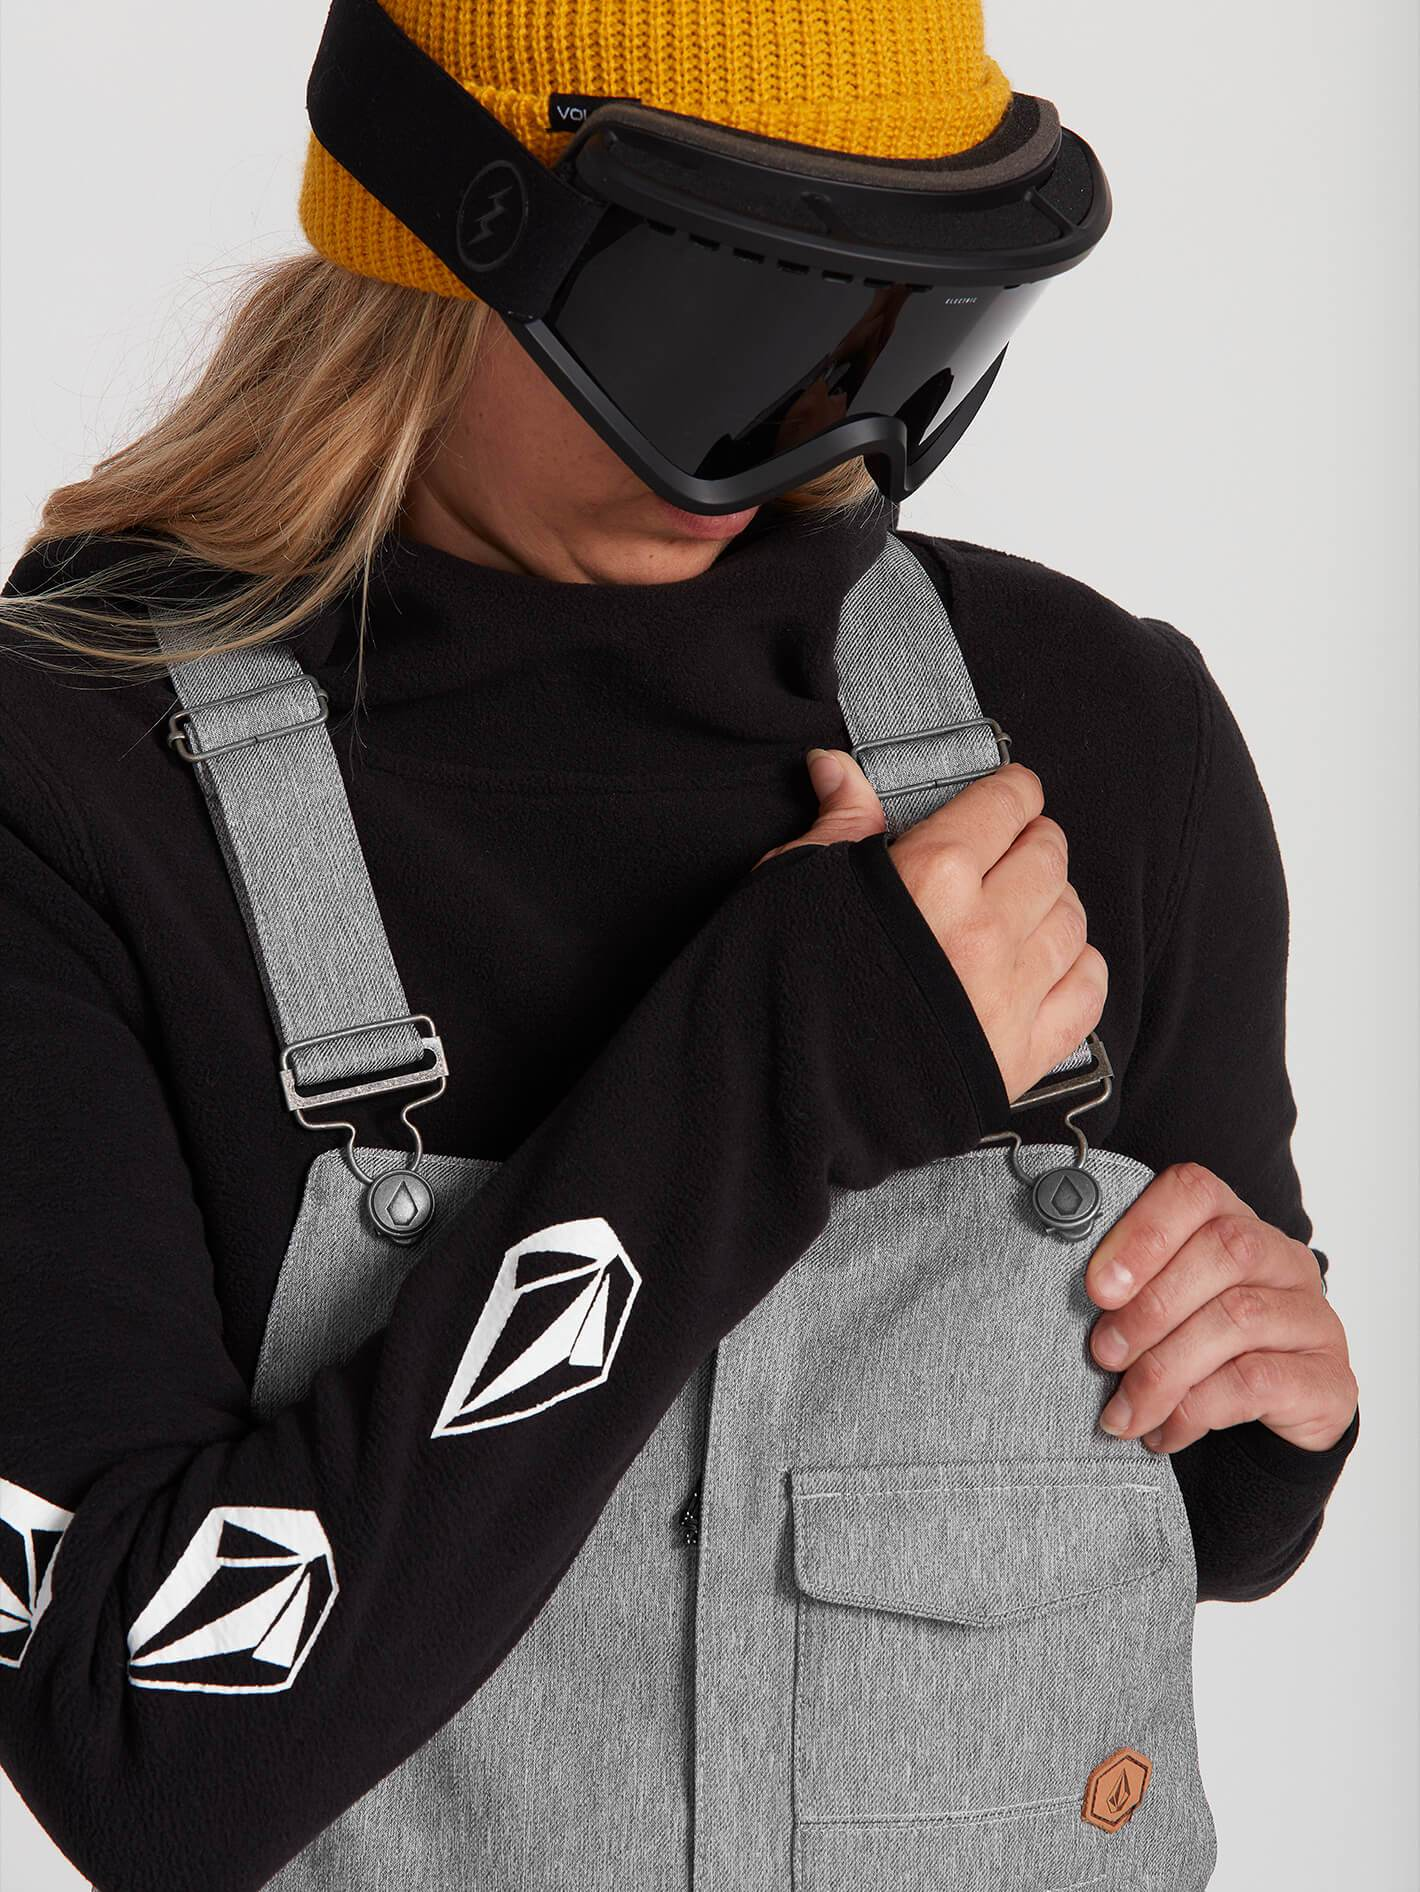 Volcom Swift Bib Overalls - 88 Gear